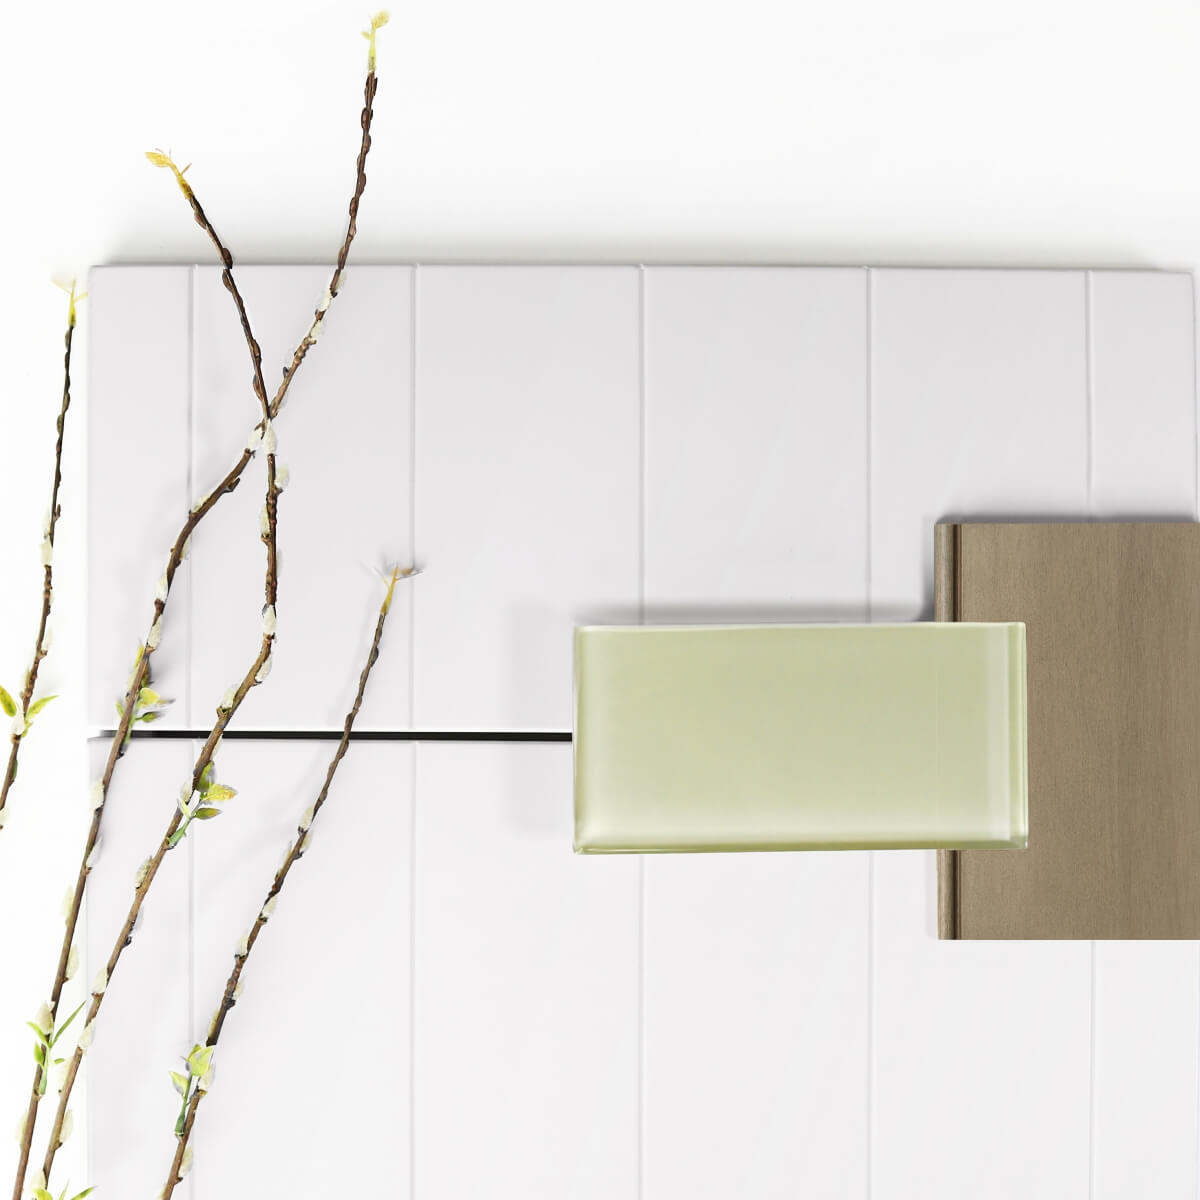 Dura Supreme Cabinetry, Linea door style in Pearl paint, and Maple Cashew chip with pale green glass subway tile